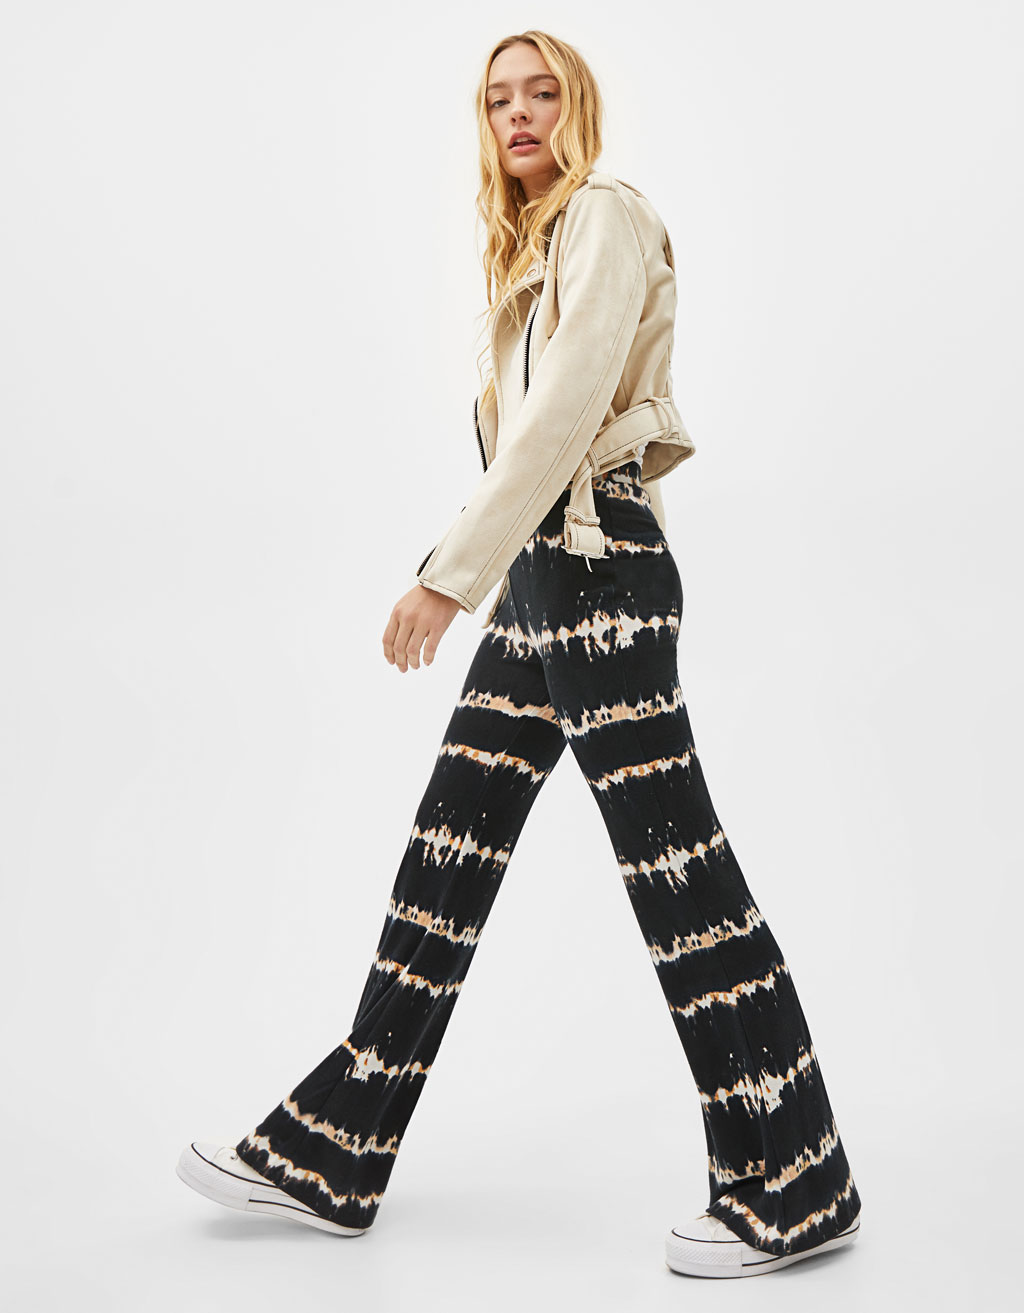 Flared trousers with tie-dye print